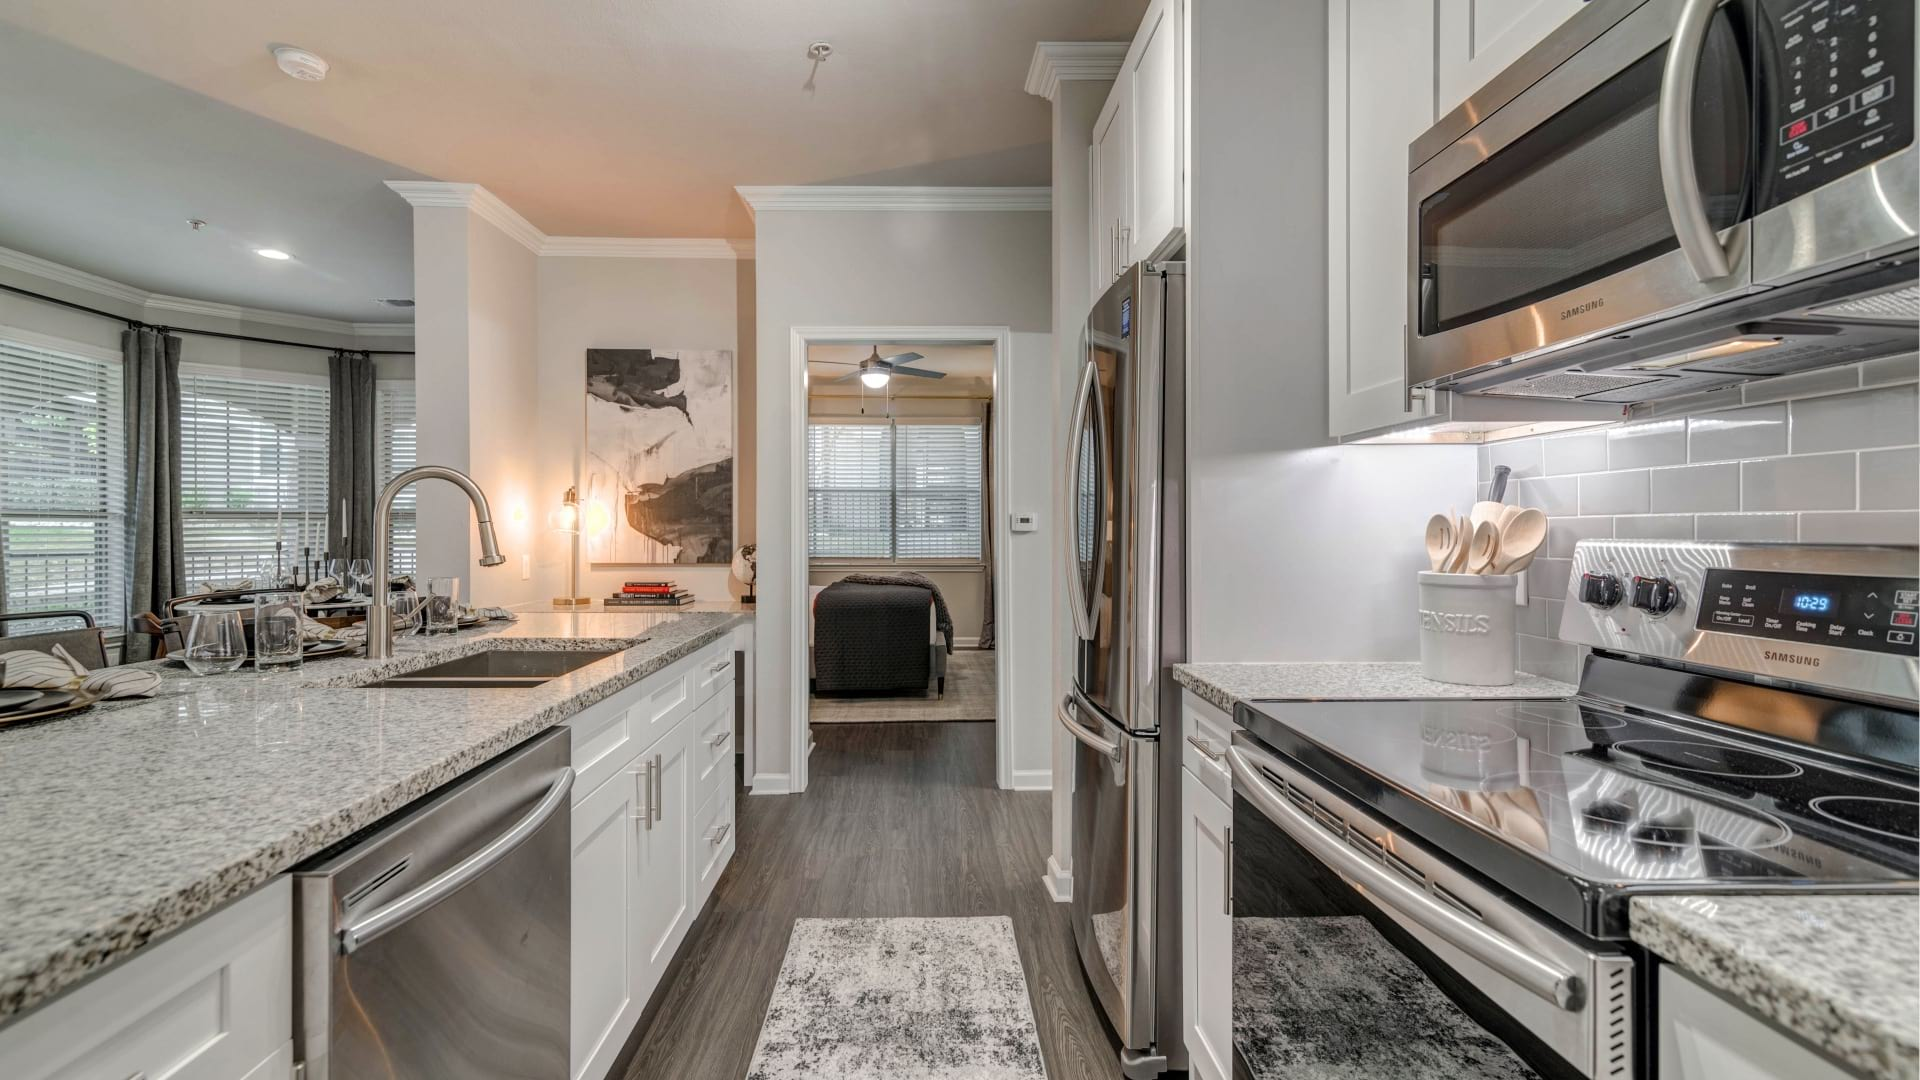 Luxury kitchen with white cabinets, granite countertops, and stainless steel appliances at our apartments for rent in Euless, TX